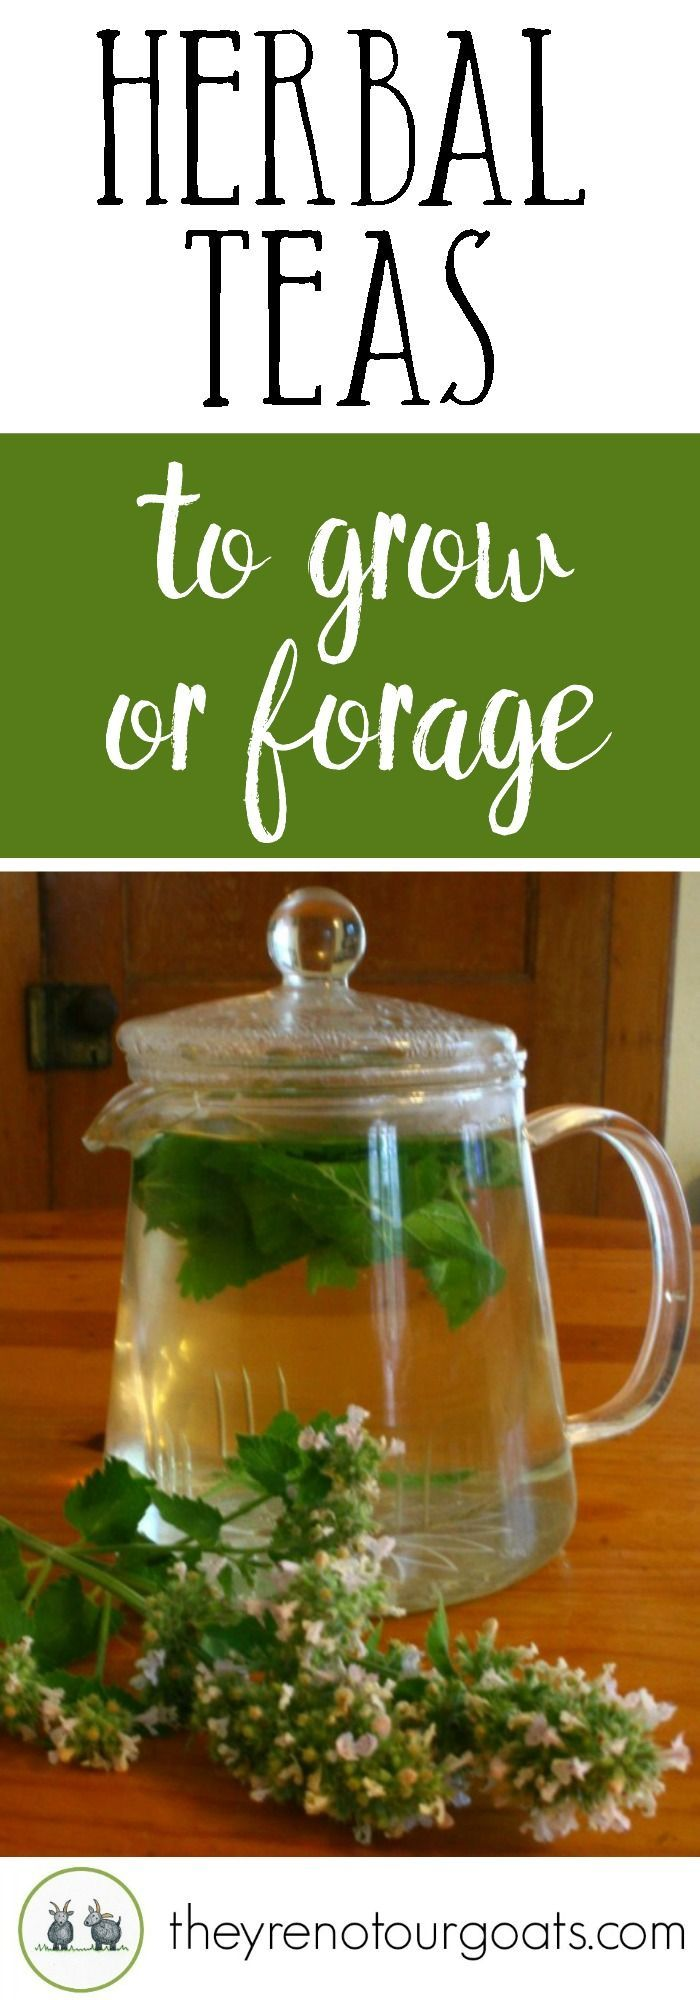 Learn how to grow or forage for these delicious herbal teas!